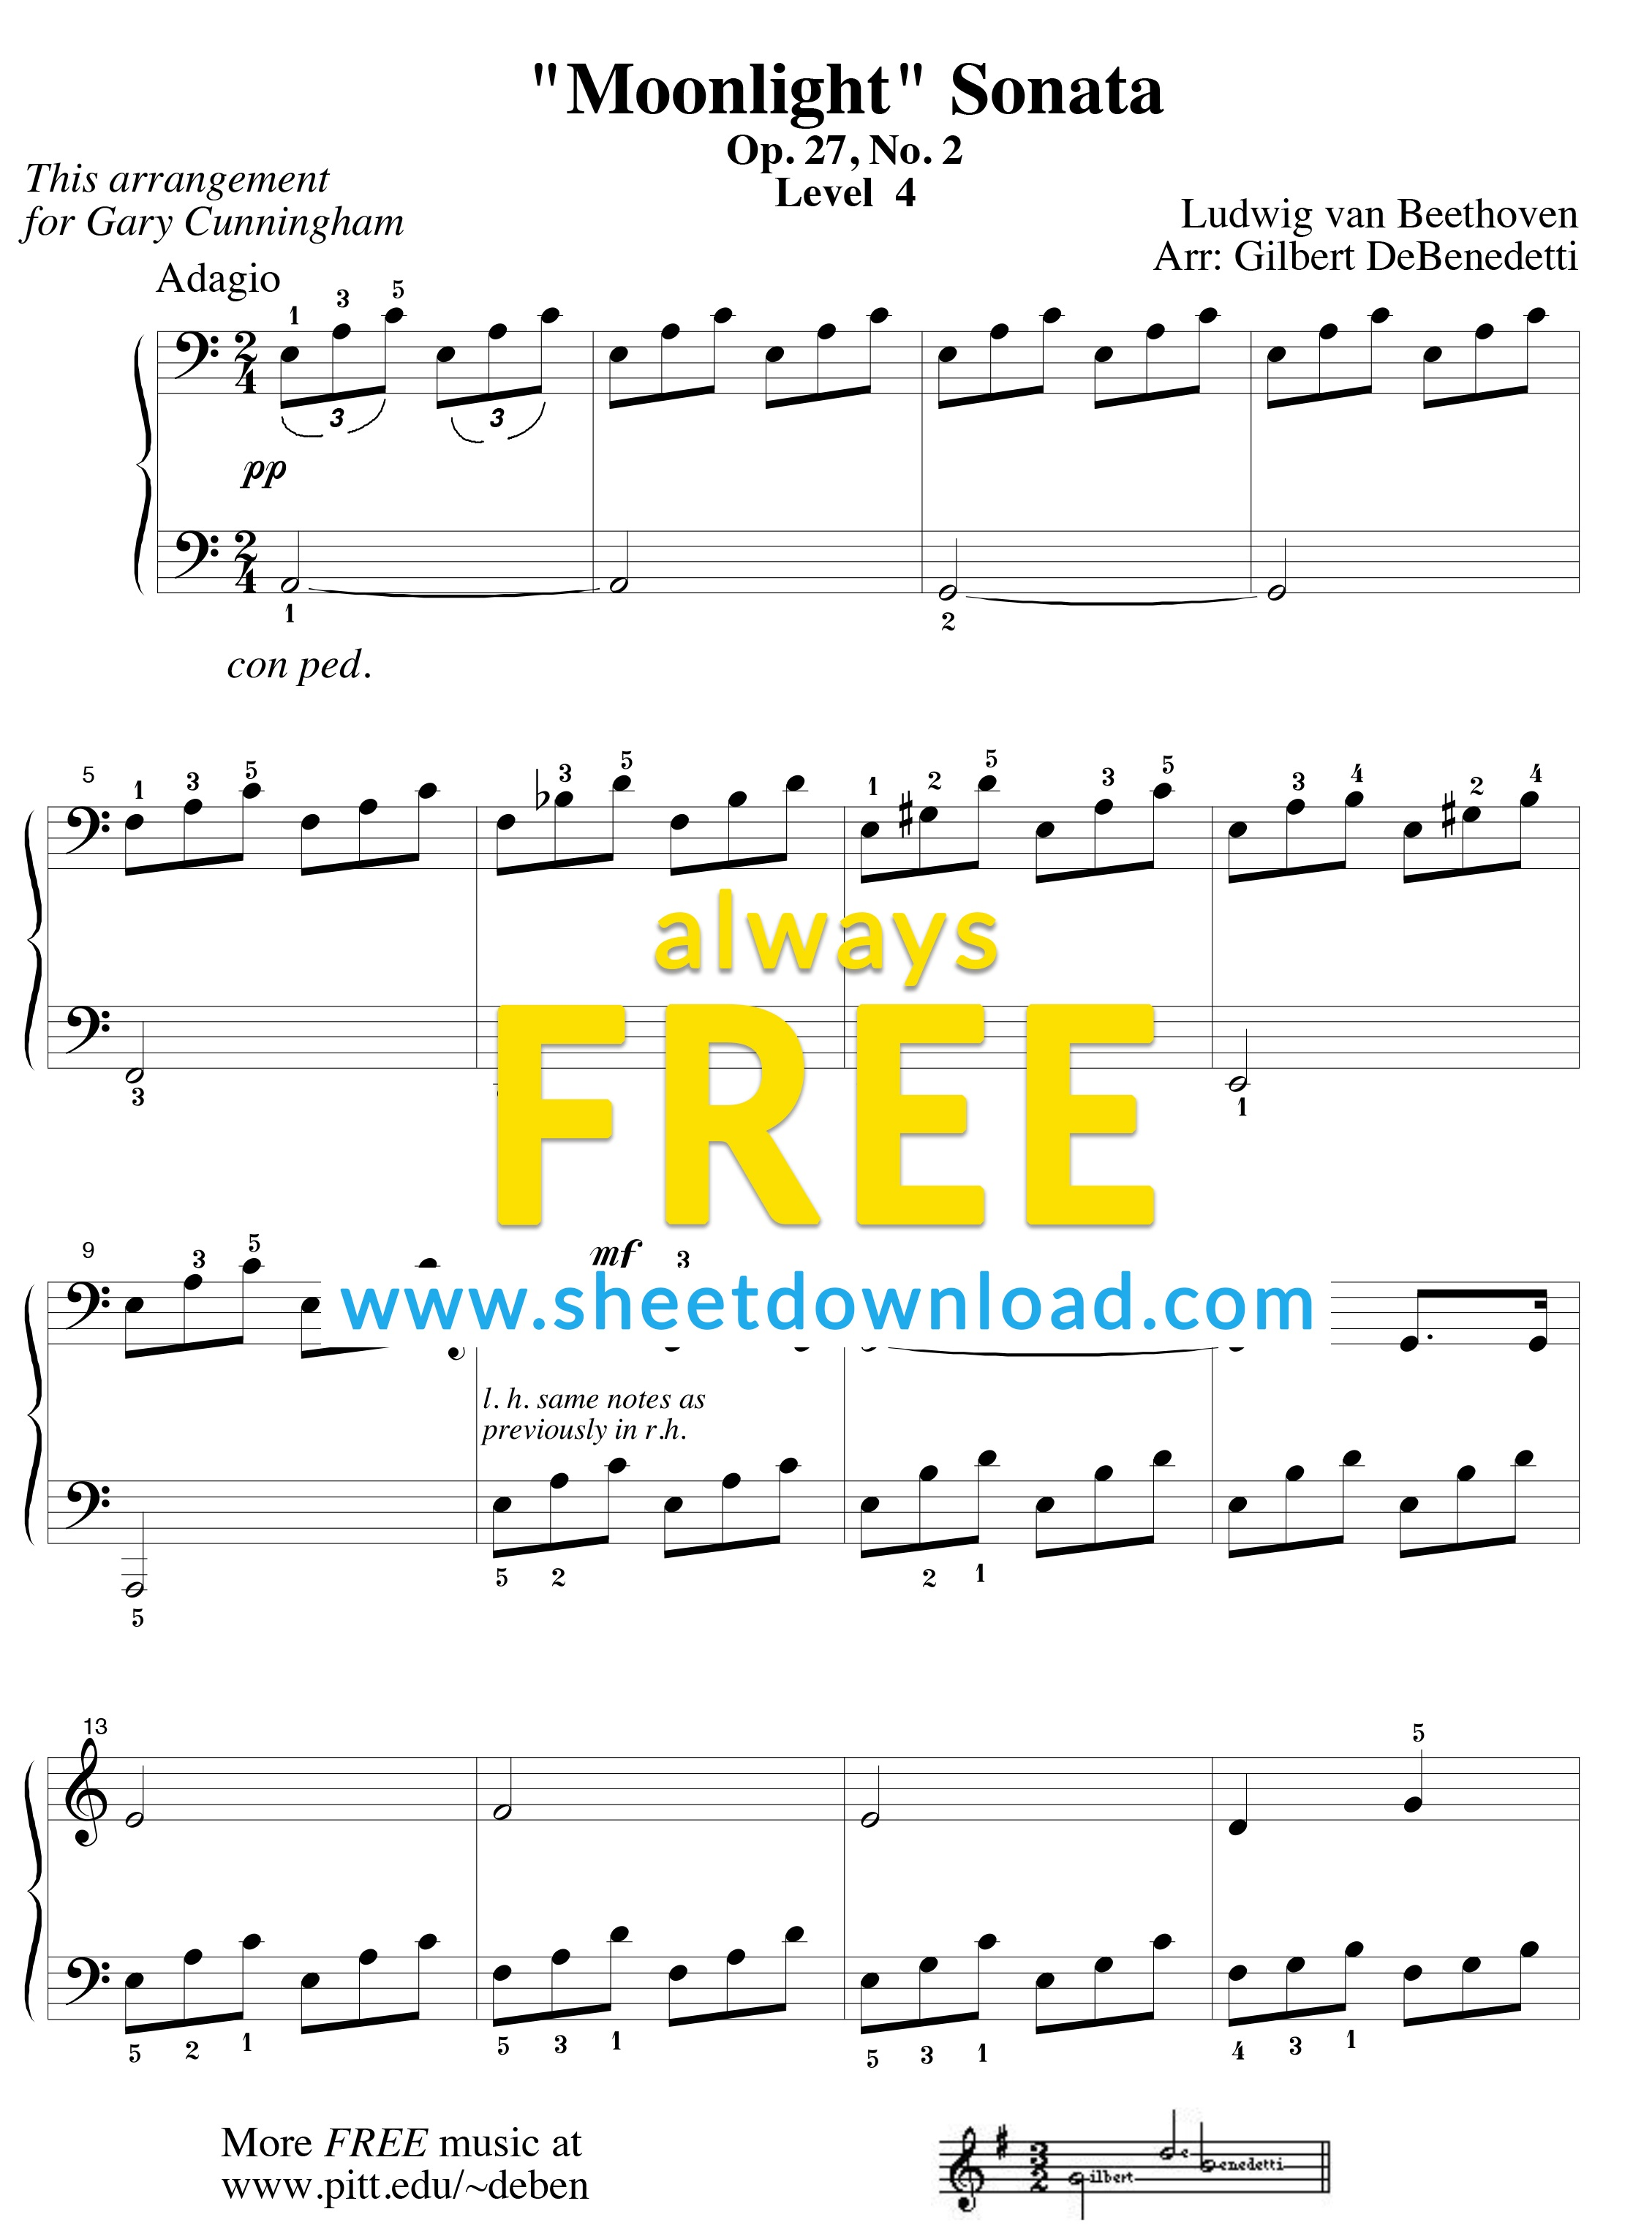 Top 100 Popular Piano Sheets Downloaded From Sheetdownload - Free Printable Piano Sheet Music For Popular Songs